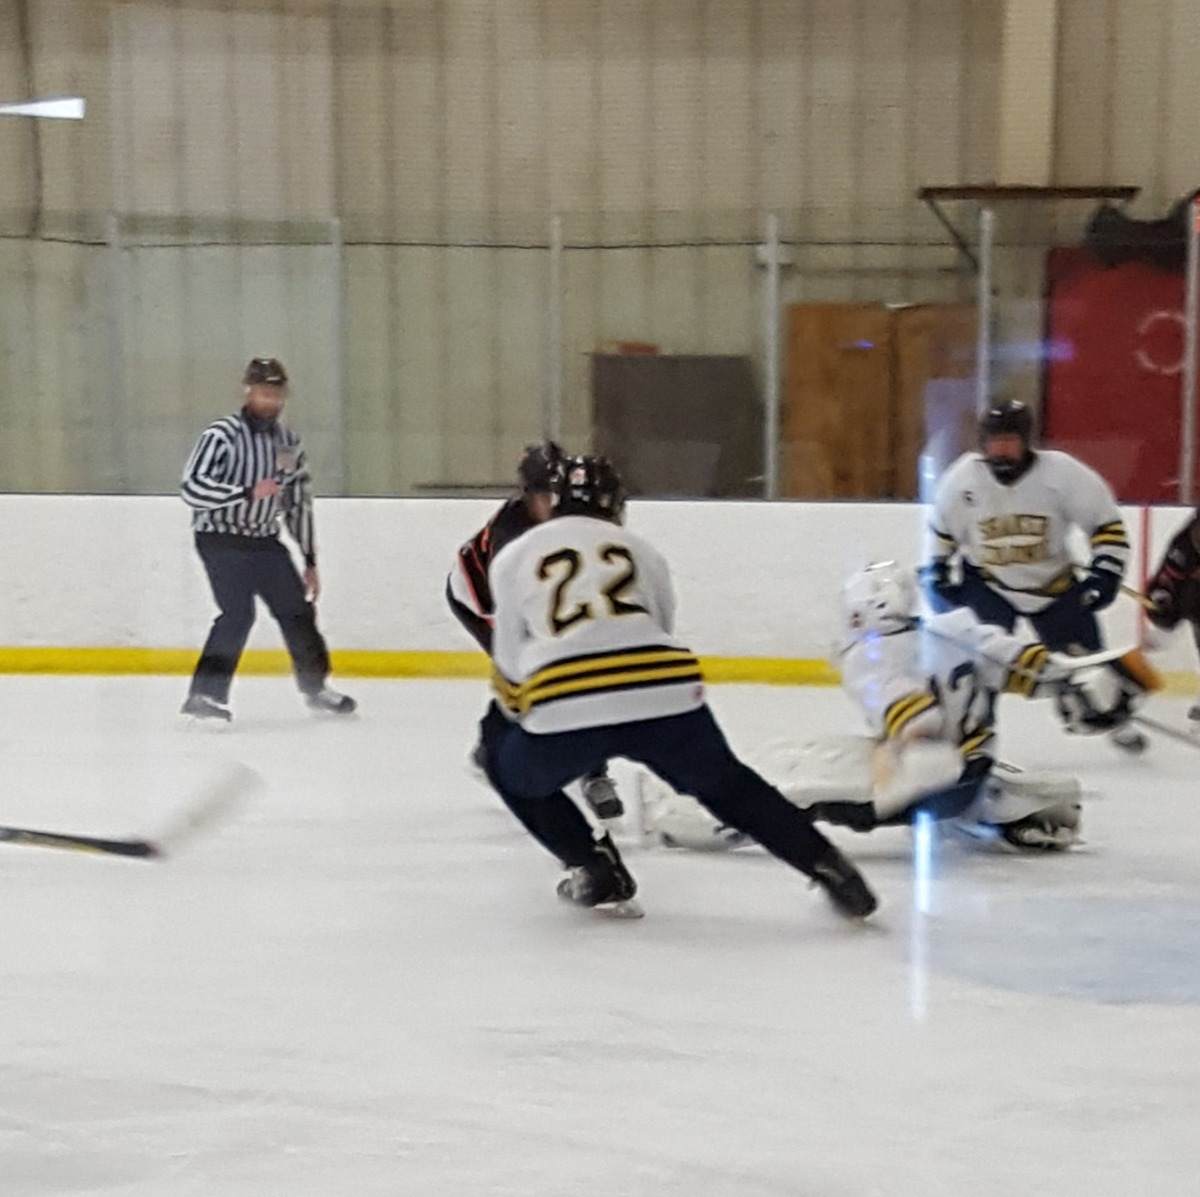 Carson Kehmna makes a defensive play in front of the net.